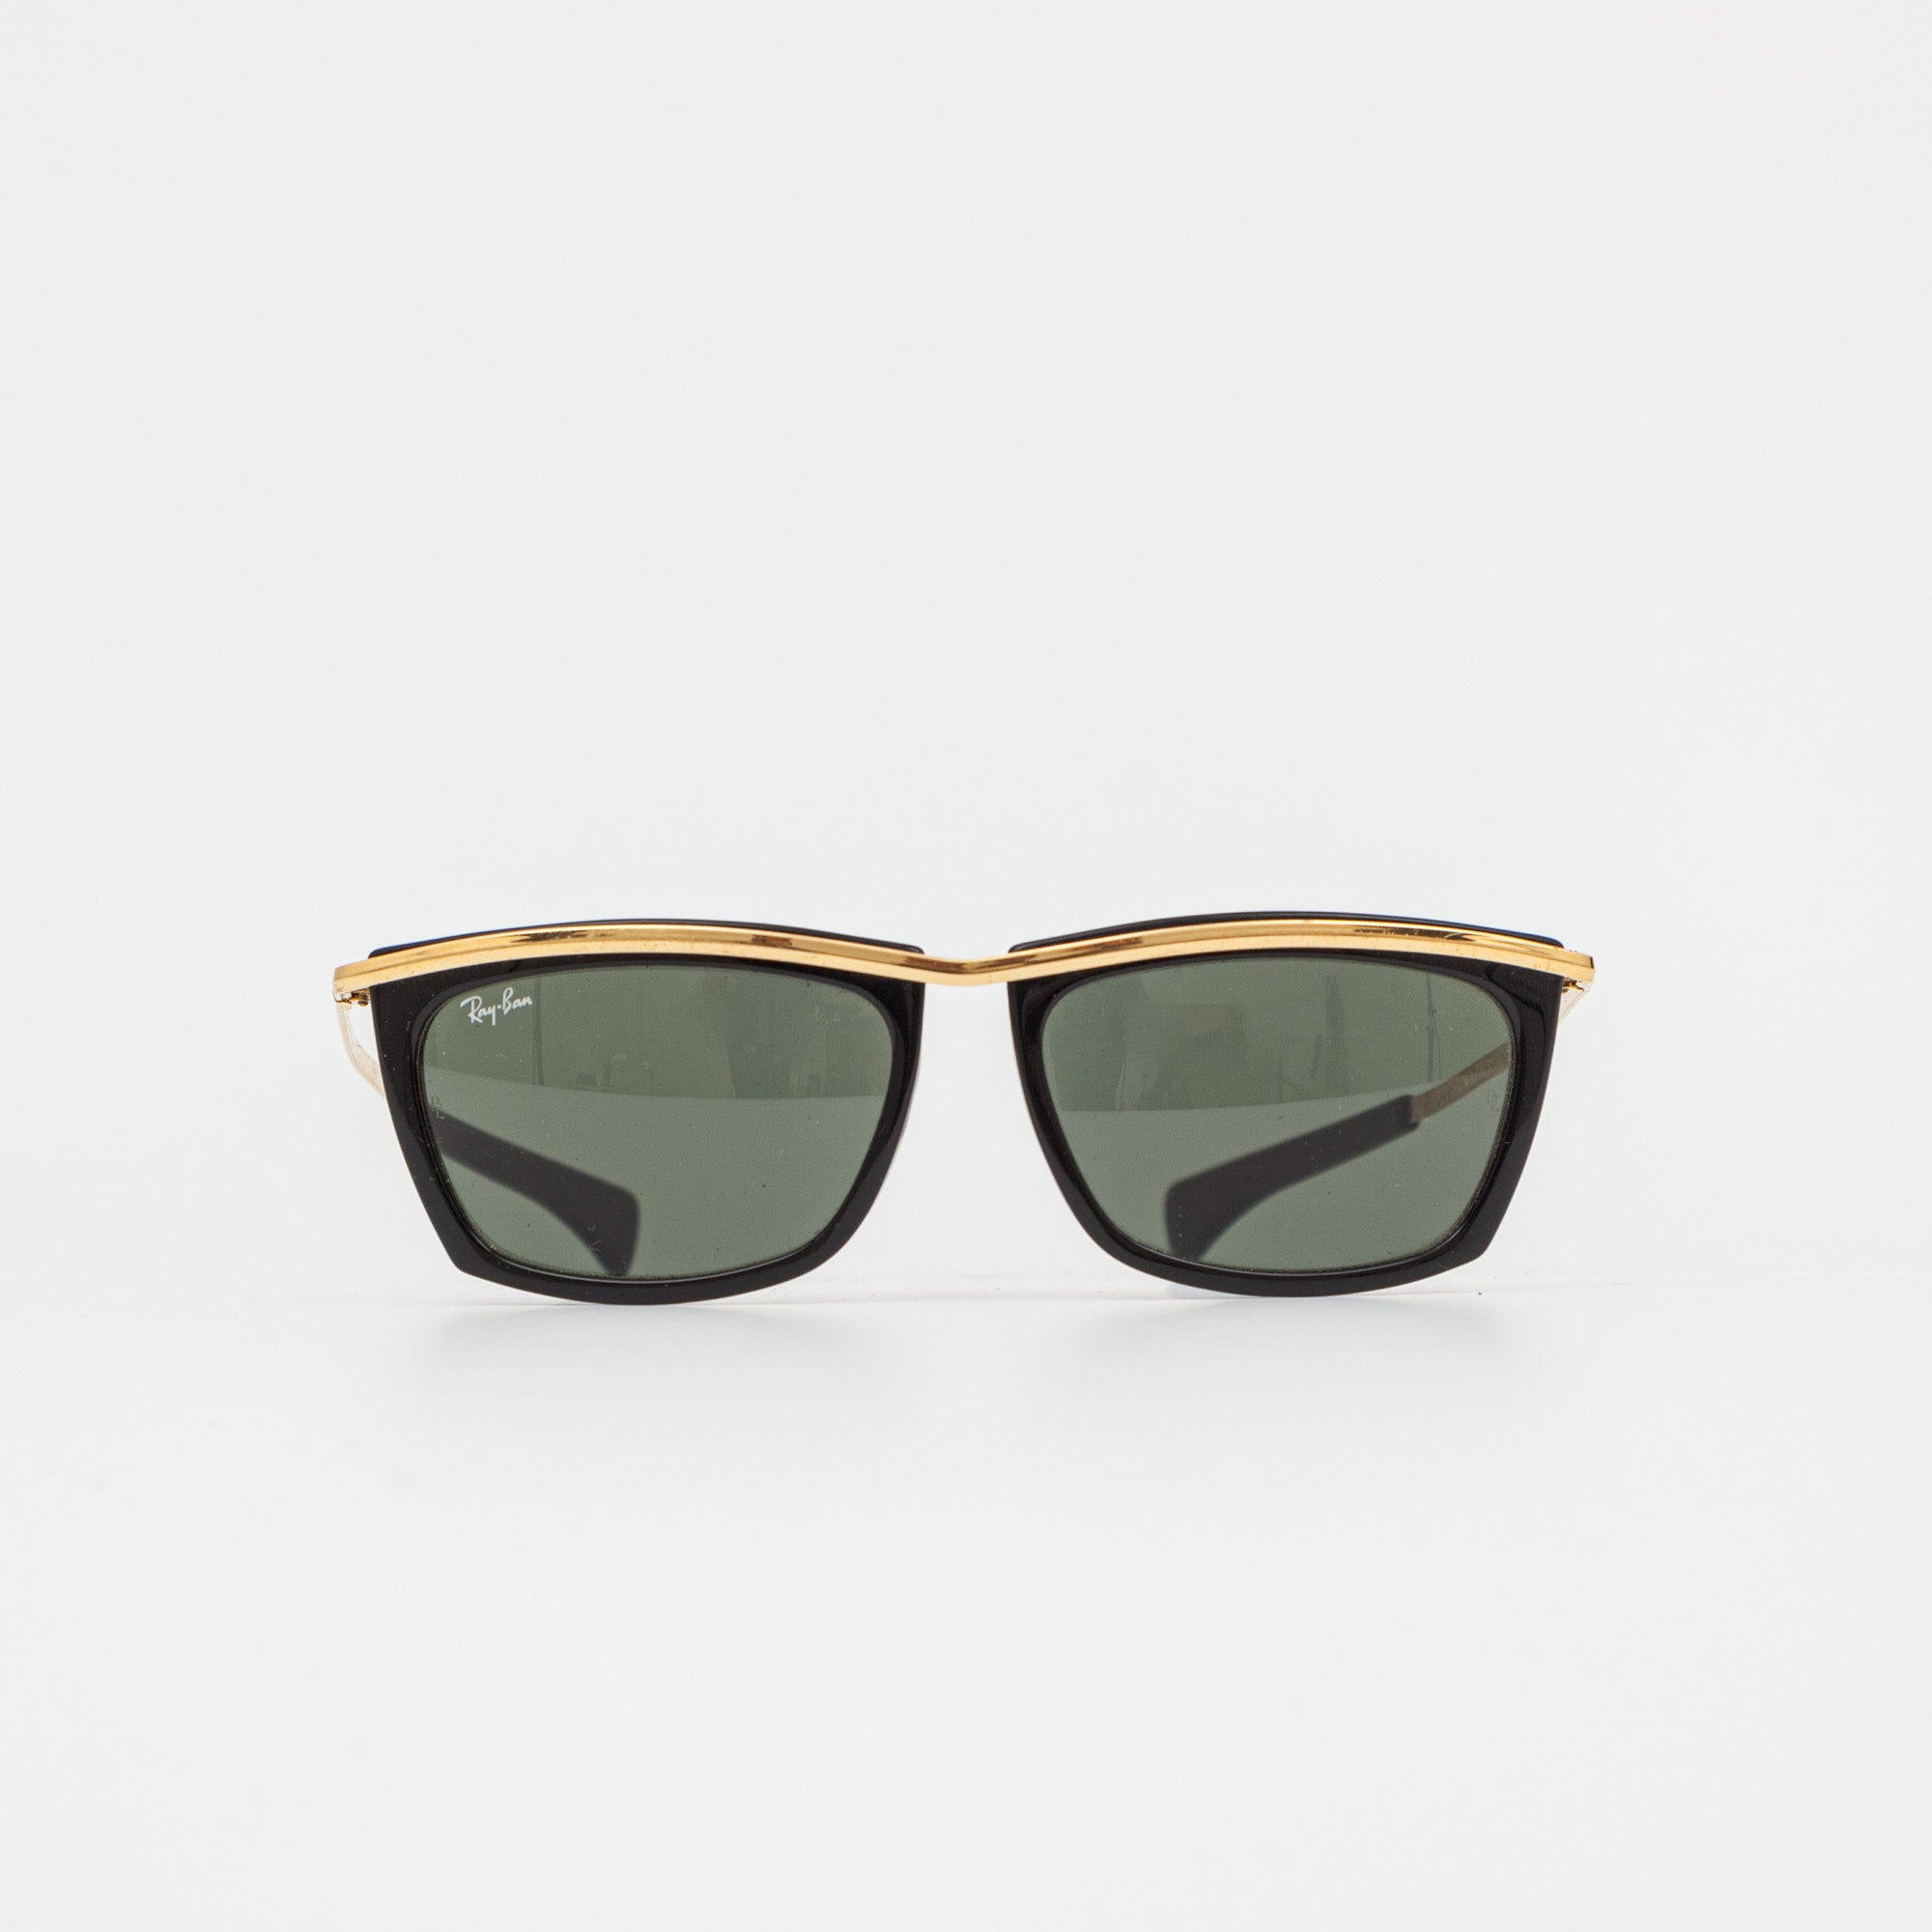 Ray-Ban Vintage 80's Olympia Sunglasses